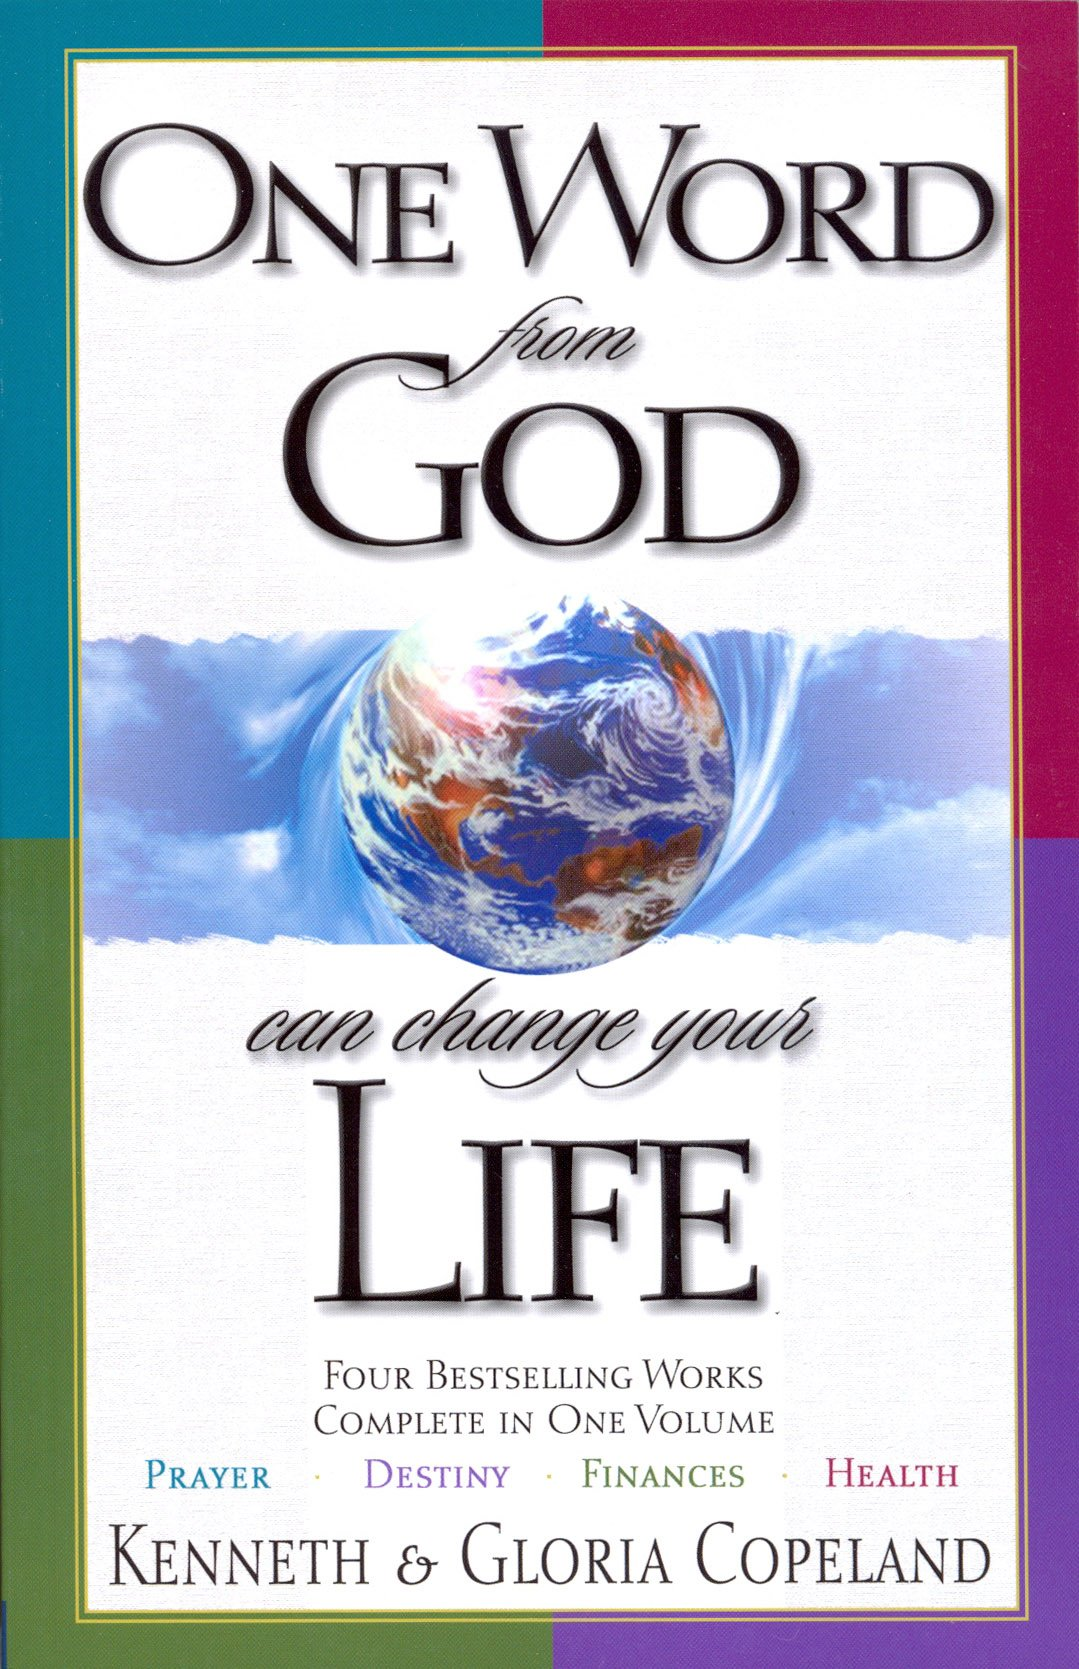 One Word from God can Change your Life